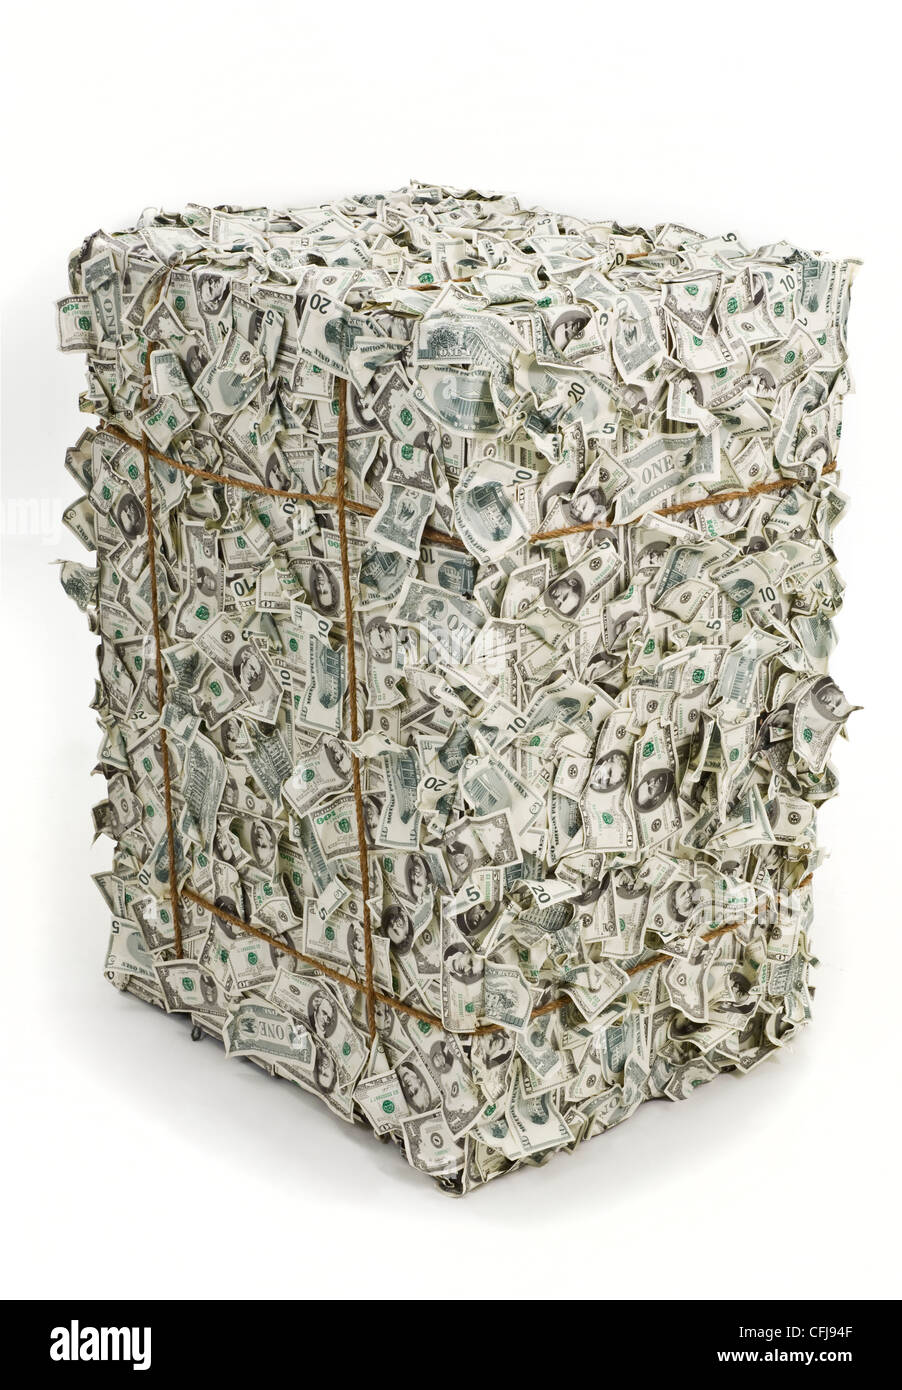 Bale of money - Stock Image